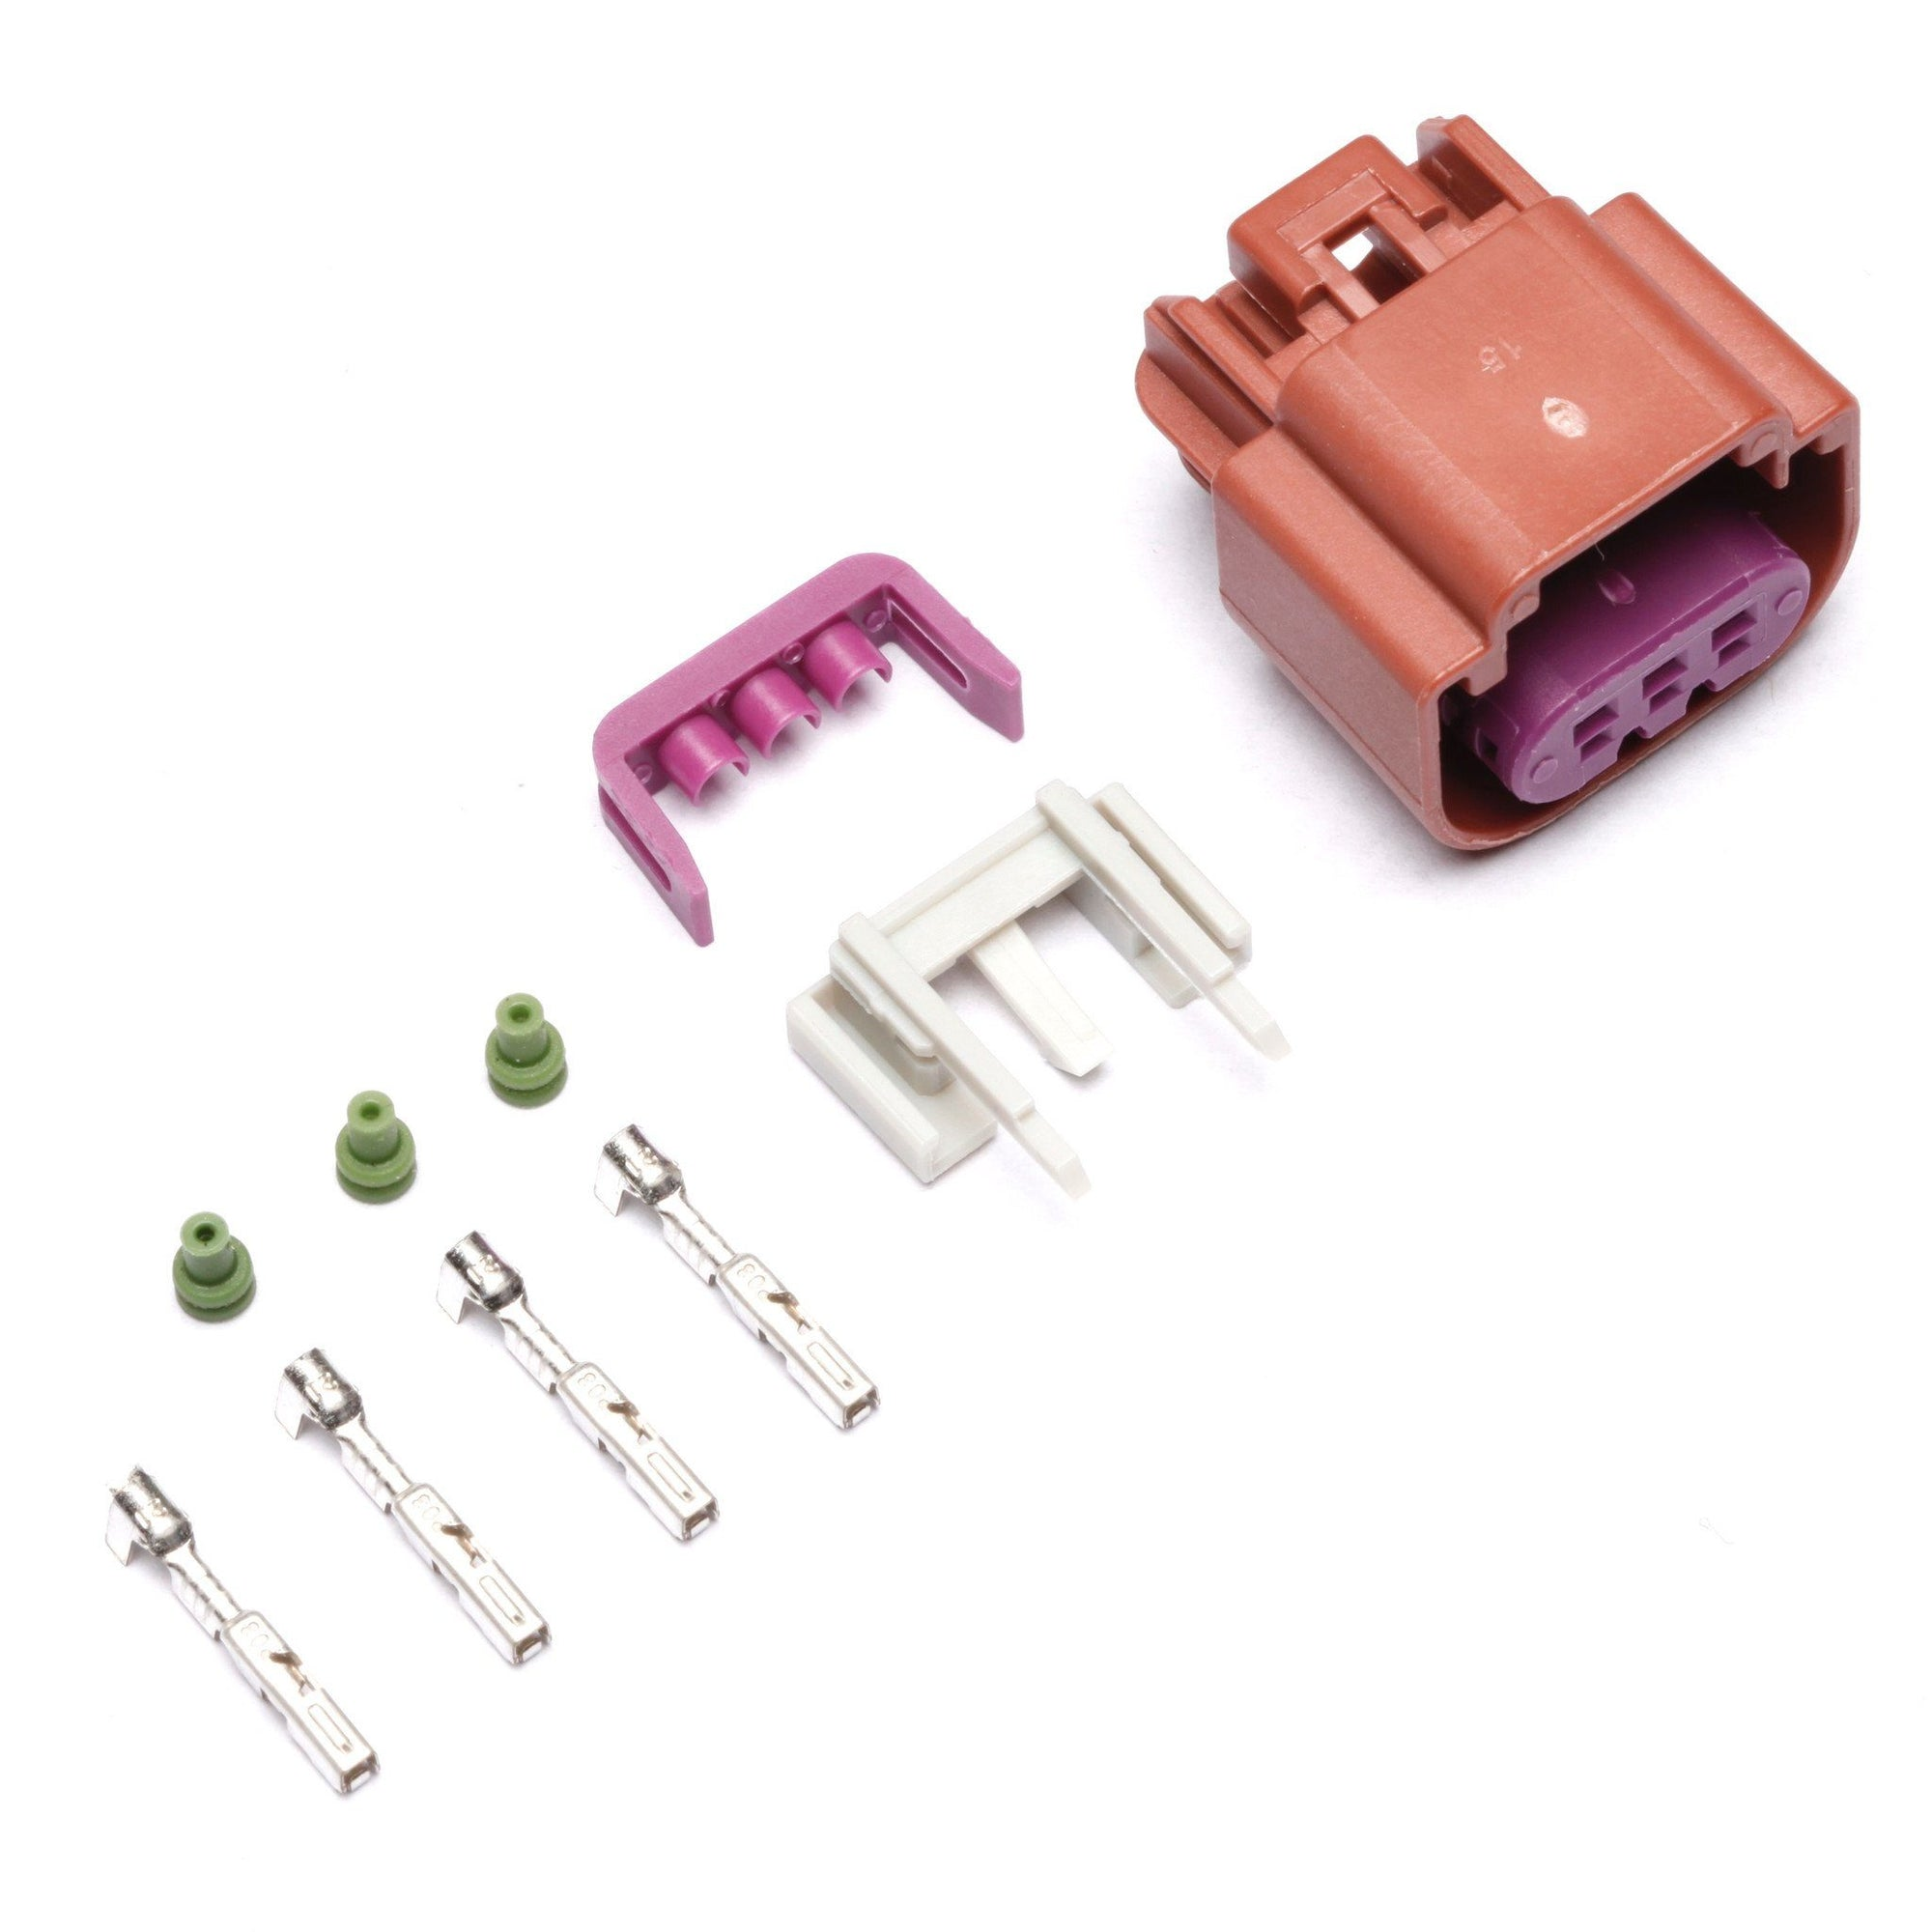 Connectors - GM Flex Fuel Sensor Connector Kit